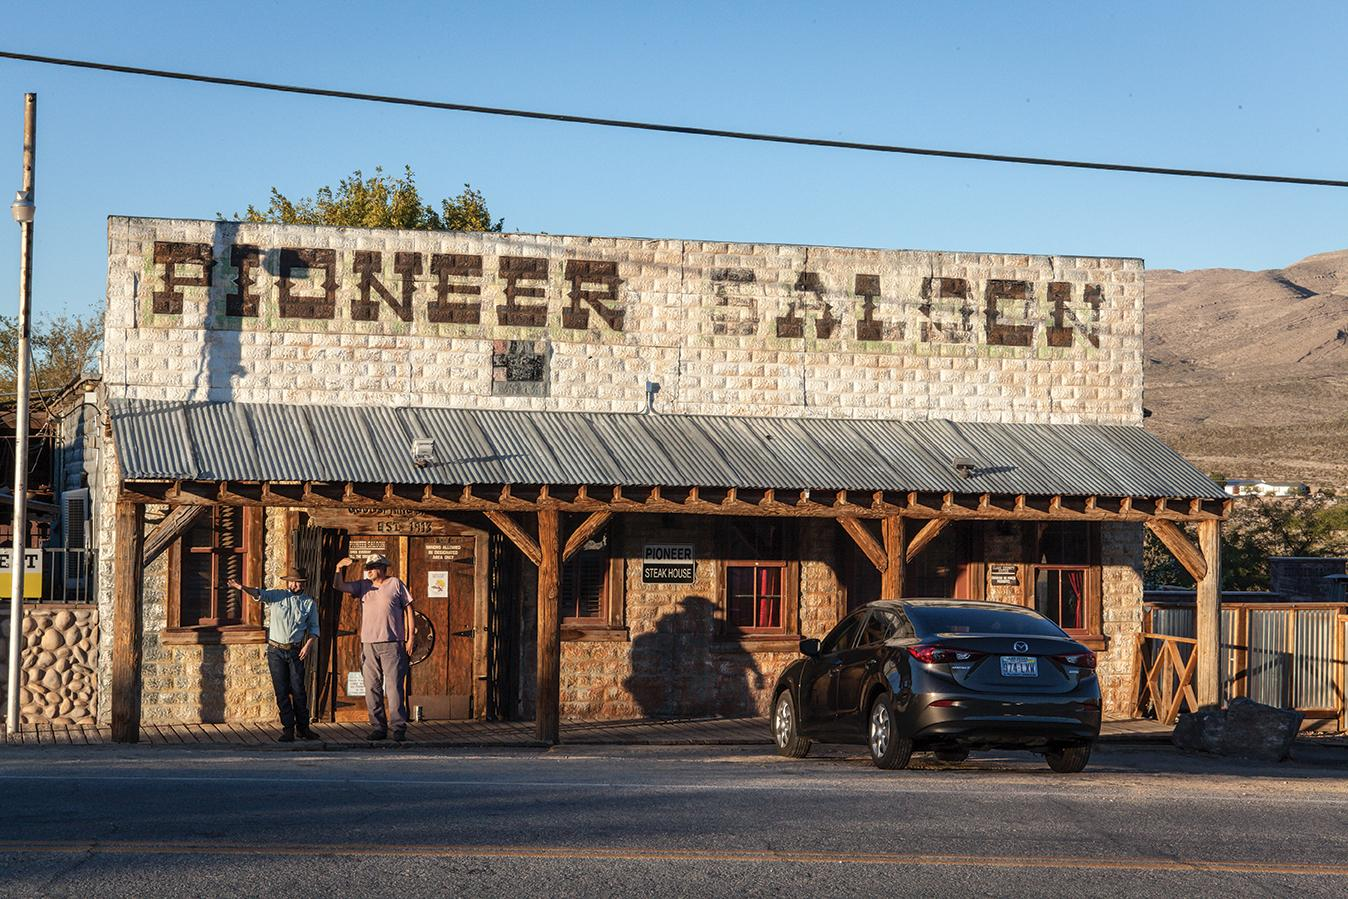 The Pioneer Saloon in Goodsprings offers modern amenities with a backdrop of Wild West history.